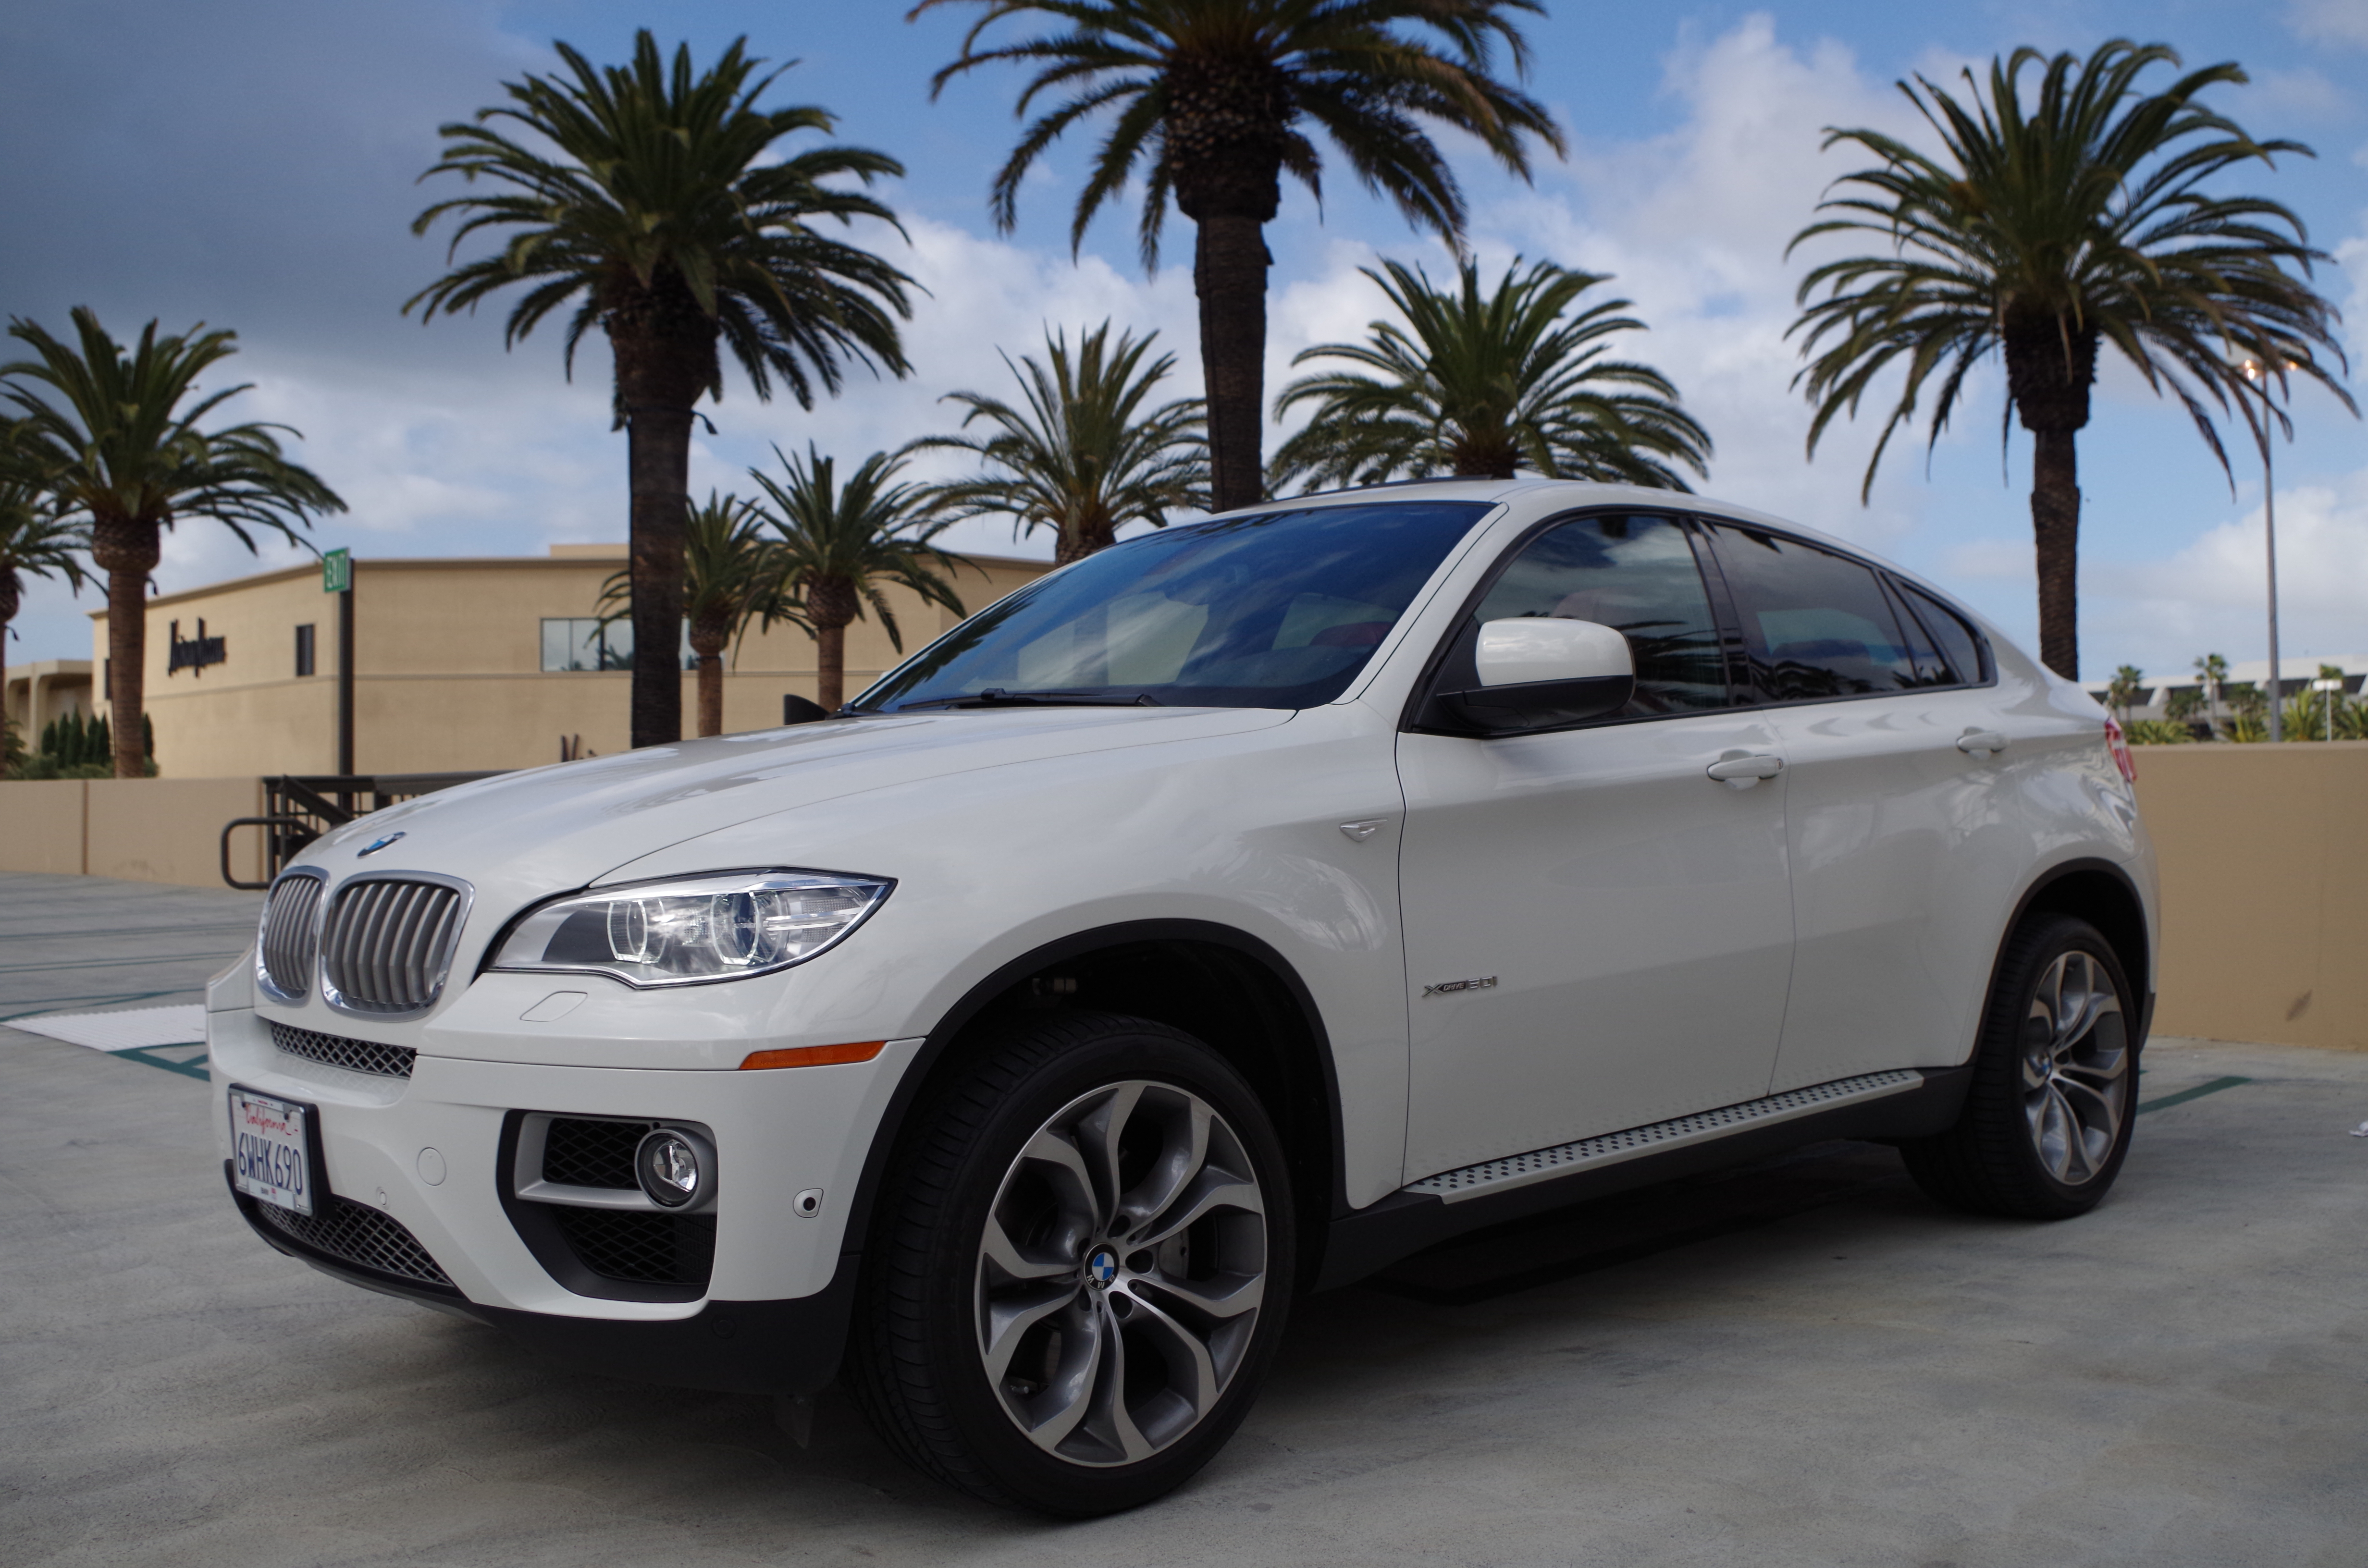 2013 bmw x6 xdrive50i review and test drive frequent. Black Bedroom Furniture Sets. Home Design Ideas